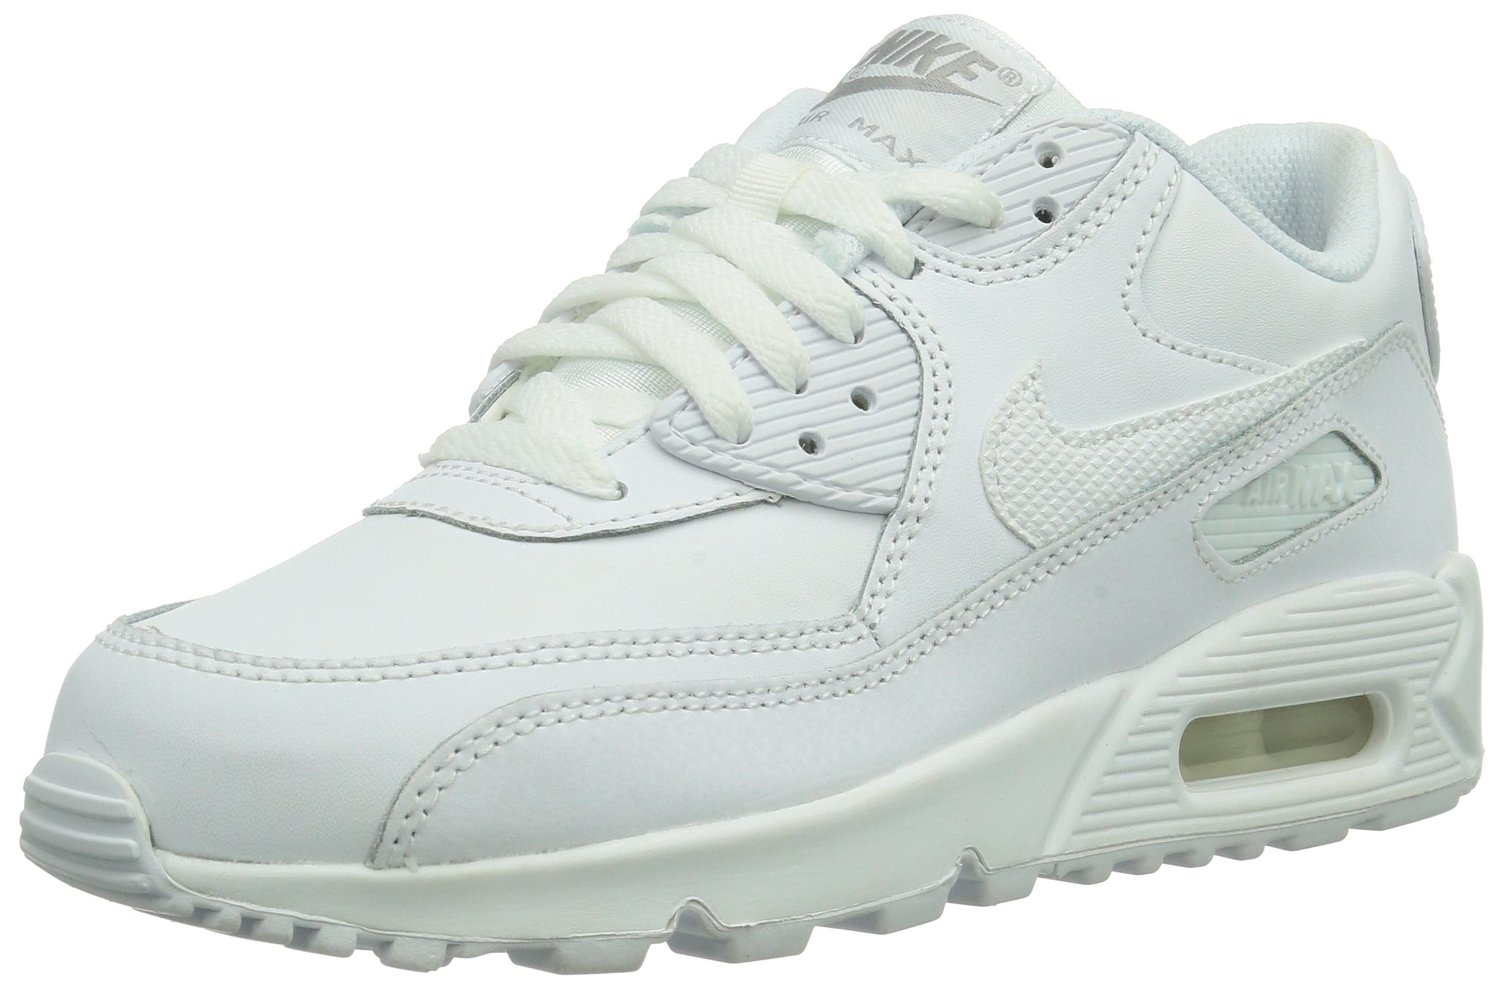 f118c00f02 Amazon.com: Nike Air Max 90 (GS) White Big Kids Running Shoes 307793-167  (7): Shoes